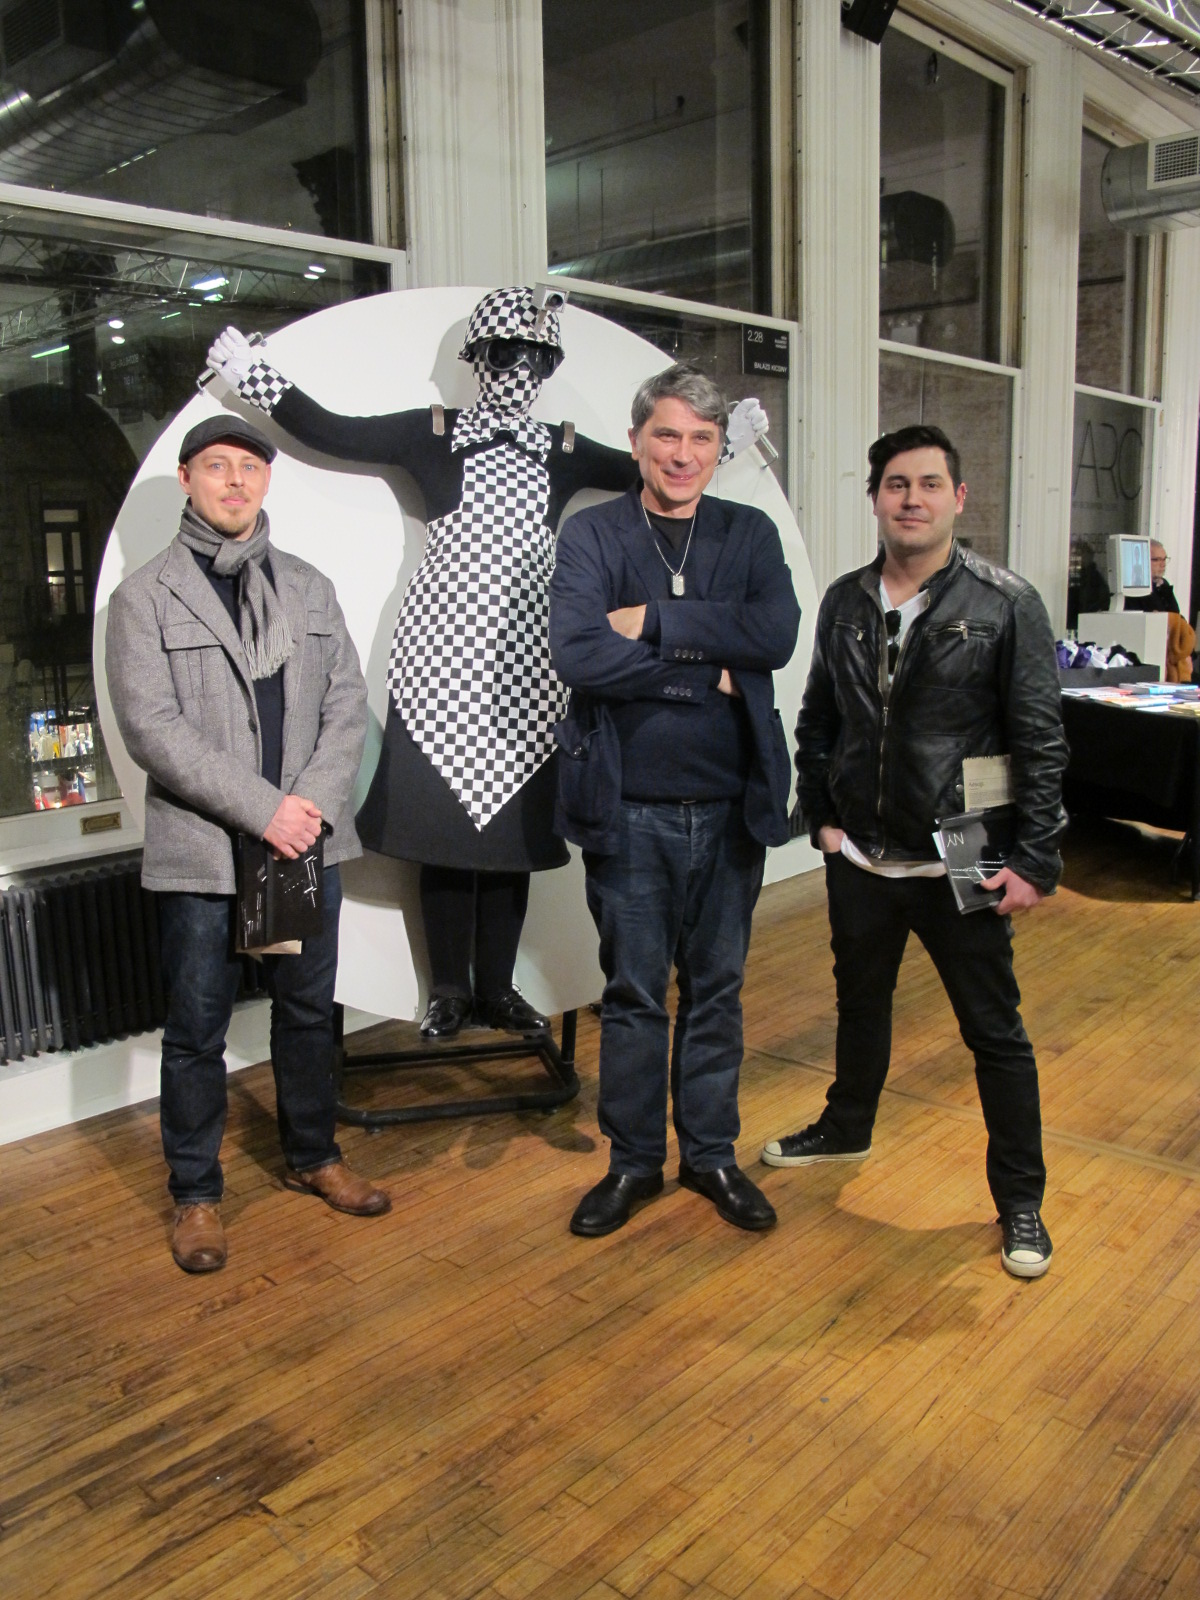 (L-R) Alex Slonevsky (Director @ Rooster Galley), Bala_zs Kicsiny (artist) and Andre_ Escarameia (Curator @ Rooster Gallery)